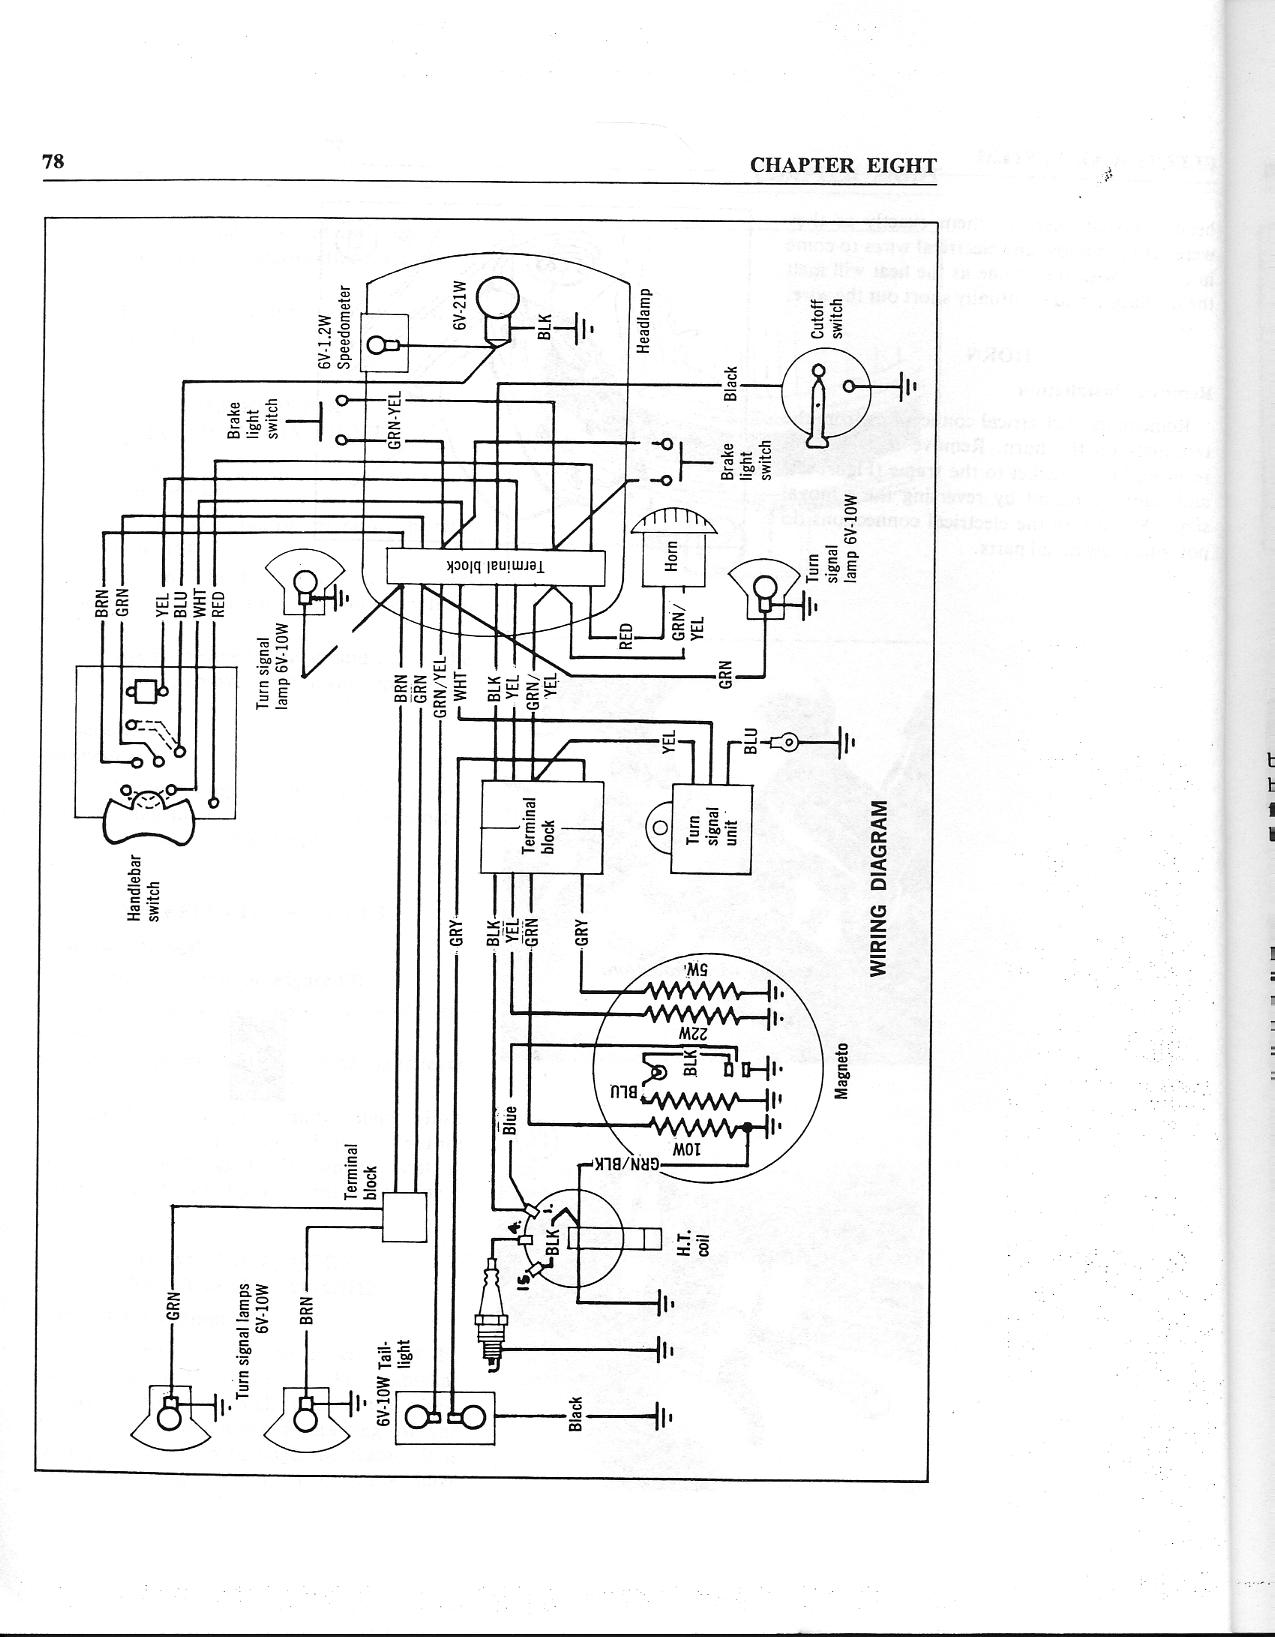 M56 wiring diagram — Moped Army